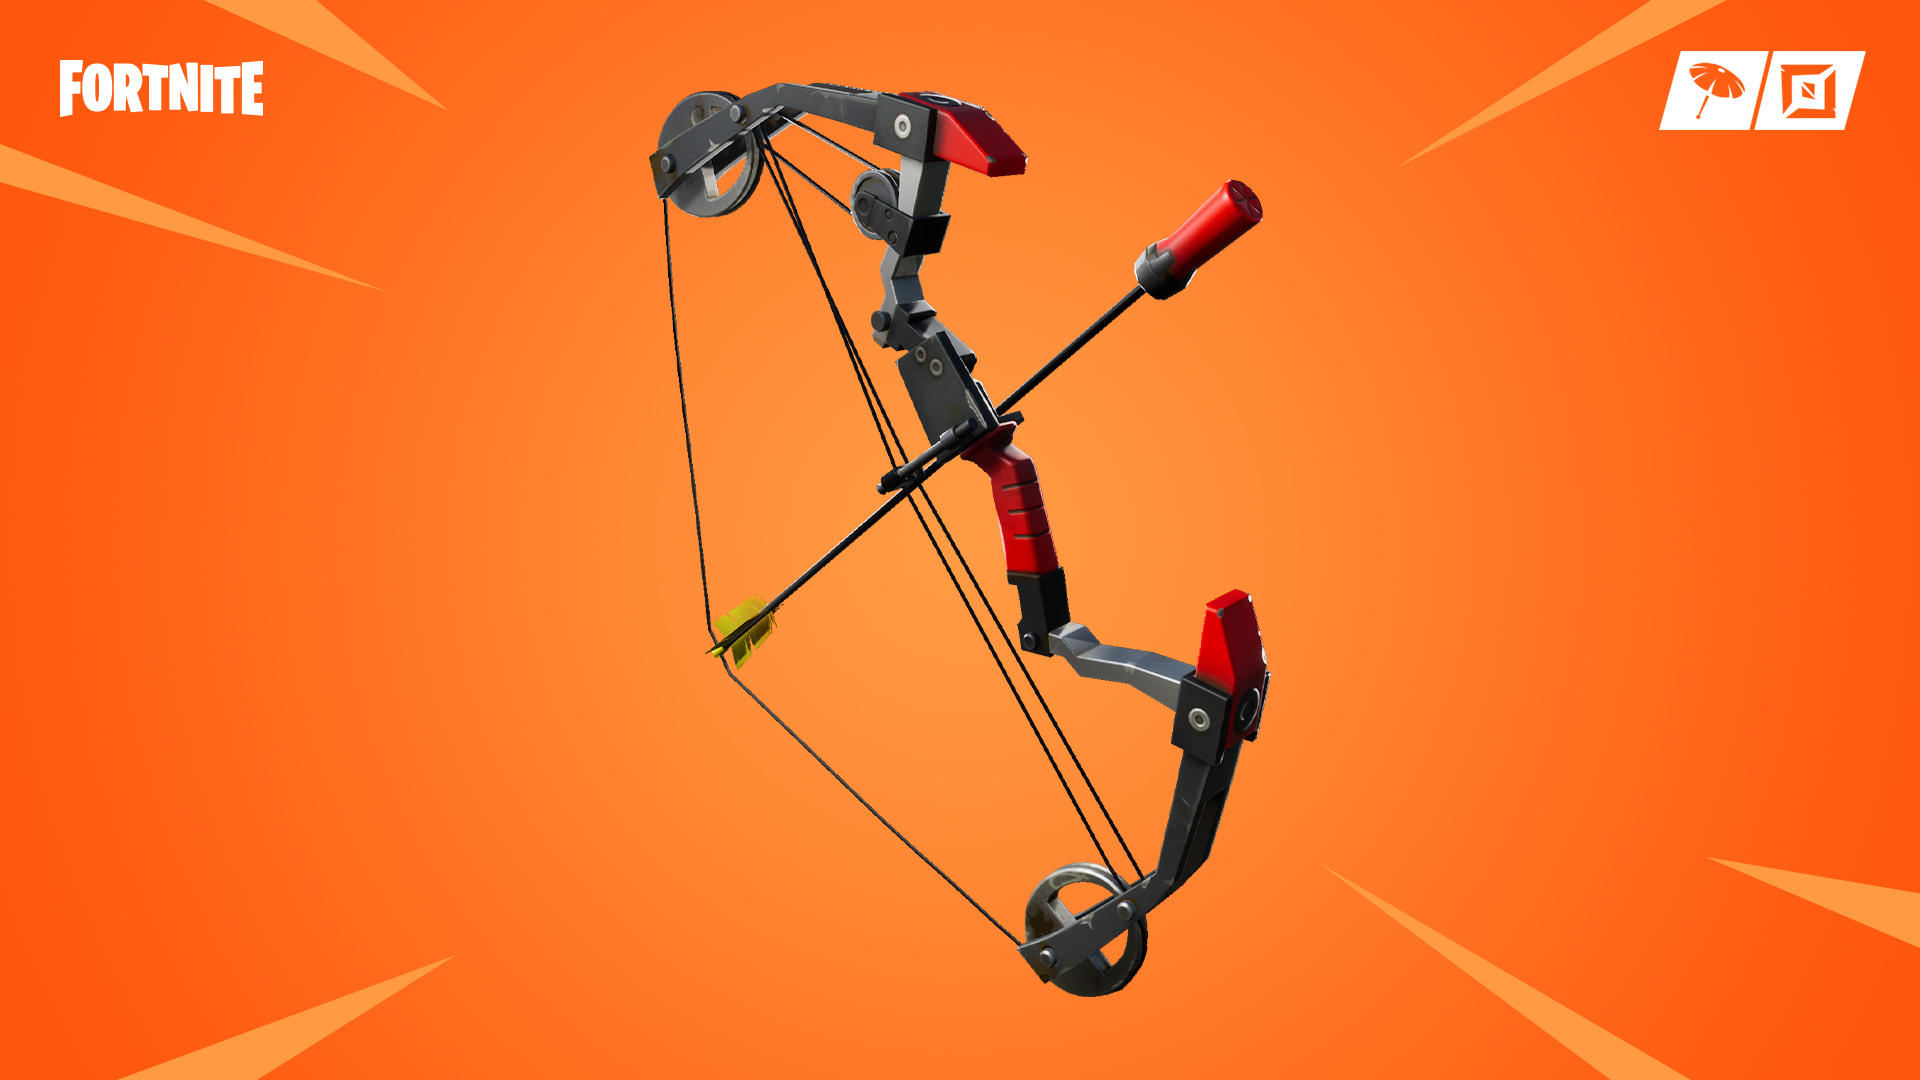 Fortnite patch notes 9.30 Chug splash, vaulted weapons and more